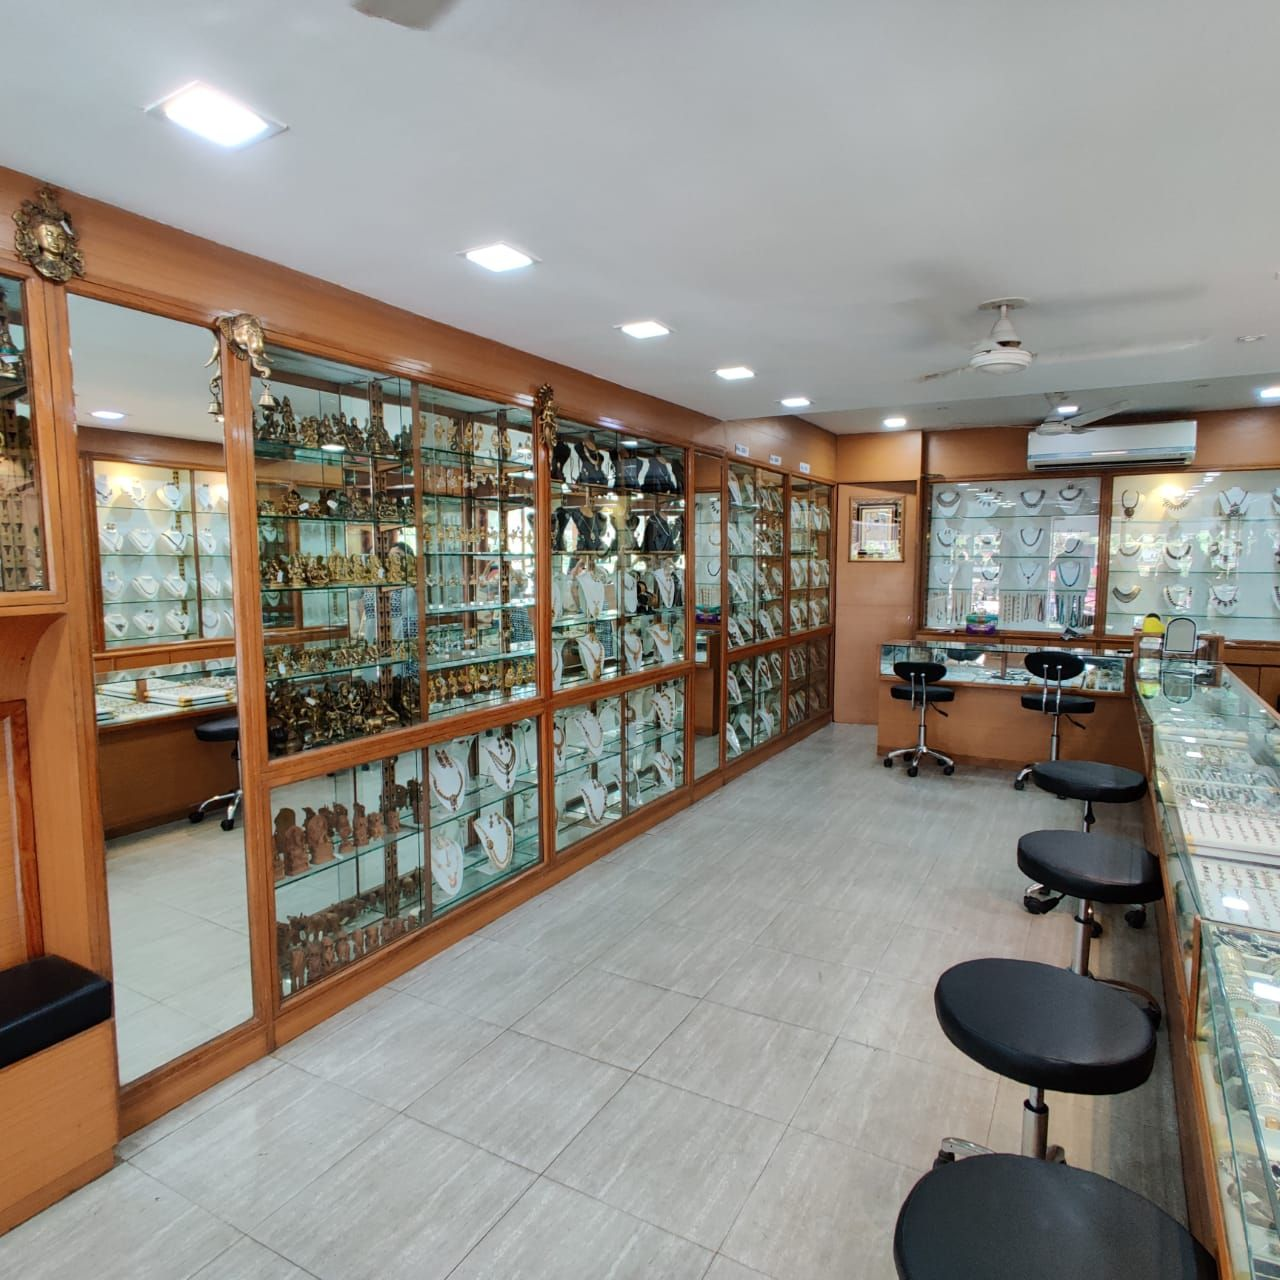 https://ciceroni.in/Services/images/EventGalleryImages/_Thumbnails/Mahesh_Kabras_Jewellery_Shoppe_1357428006.jpg